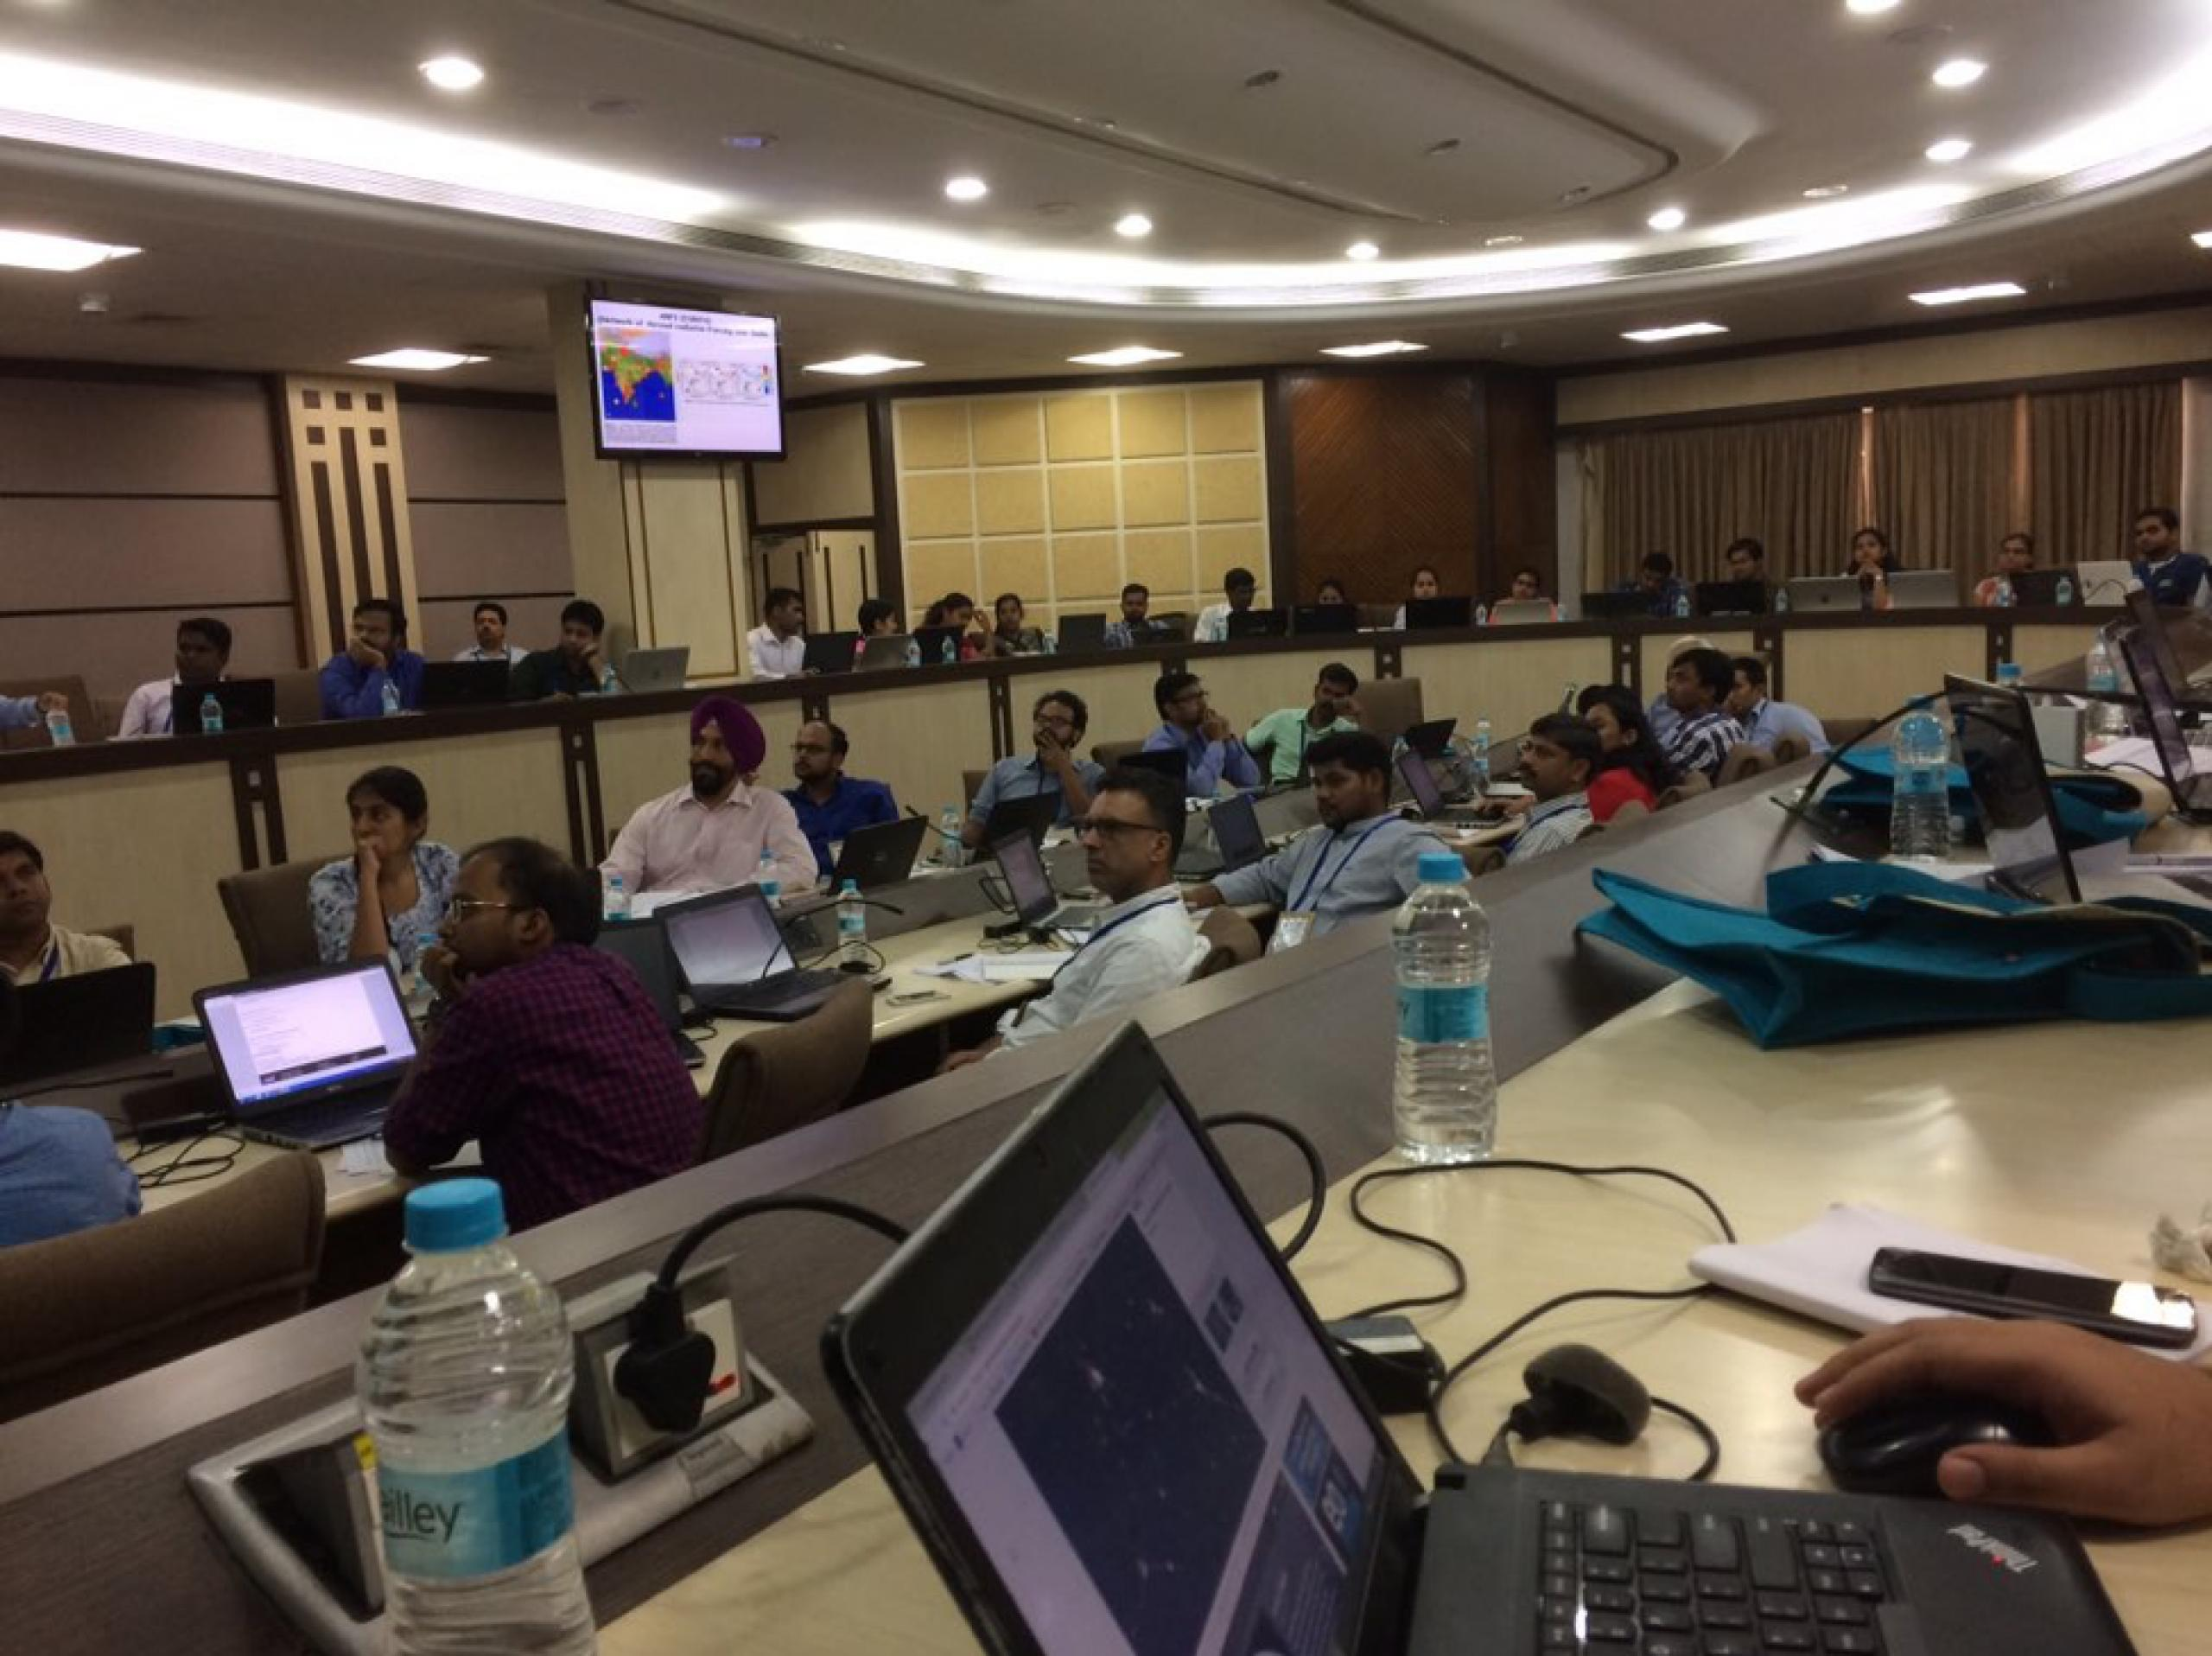 Photo of group of people attending air quality training